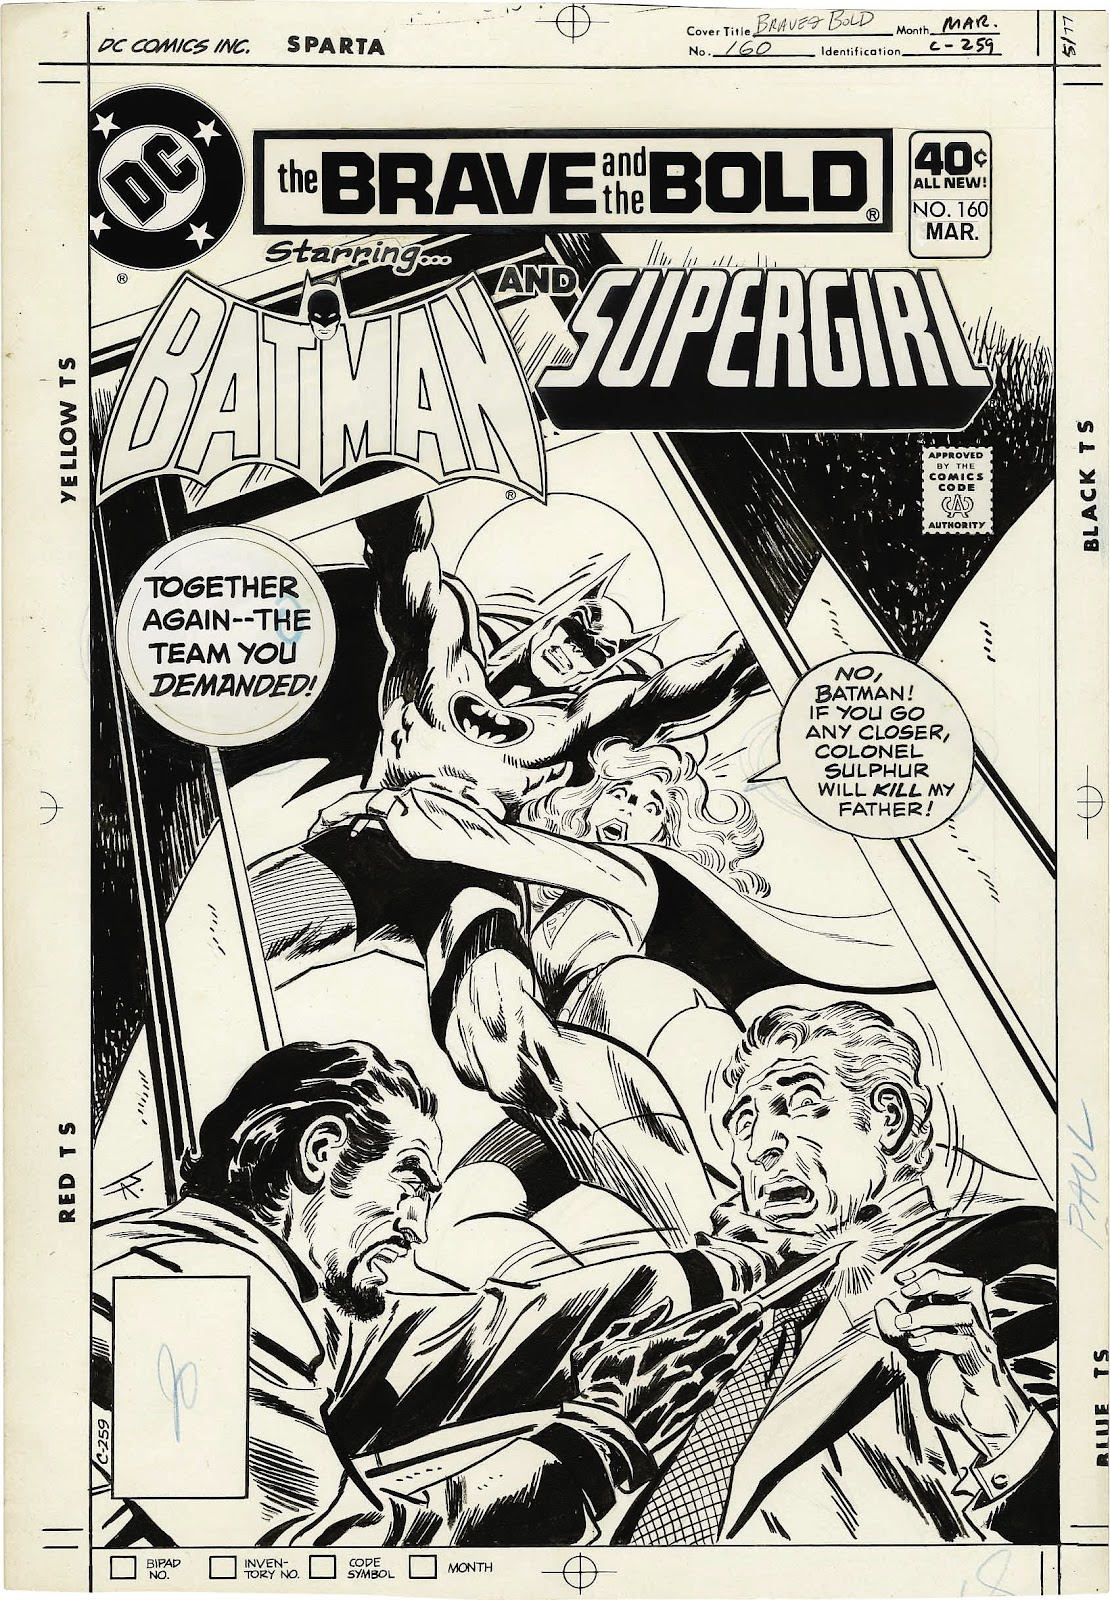 Aparo Pop Culture Safari Jul 19 2012